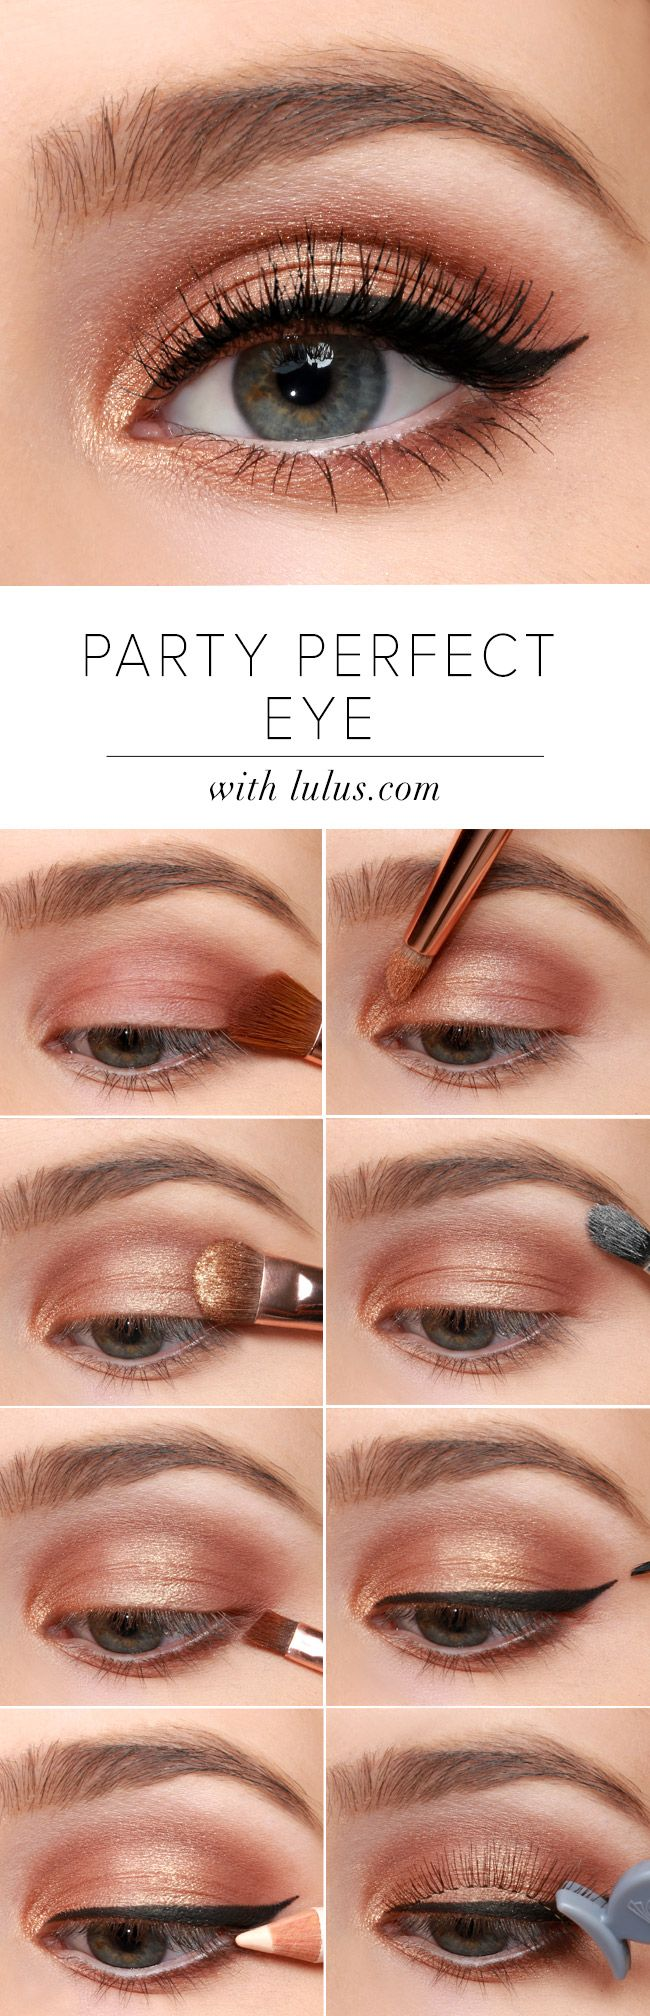 Lulus Howto: Party Perfect Eye Makeup Tutorial